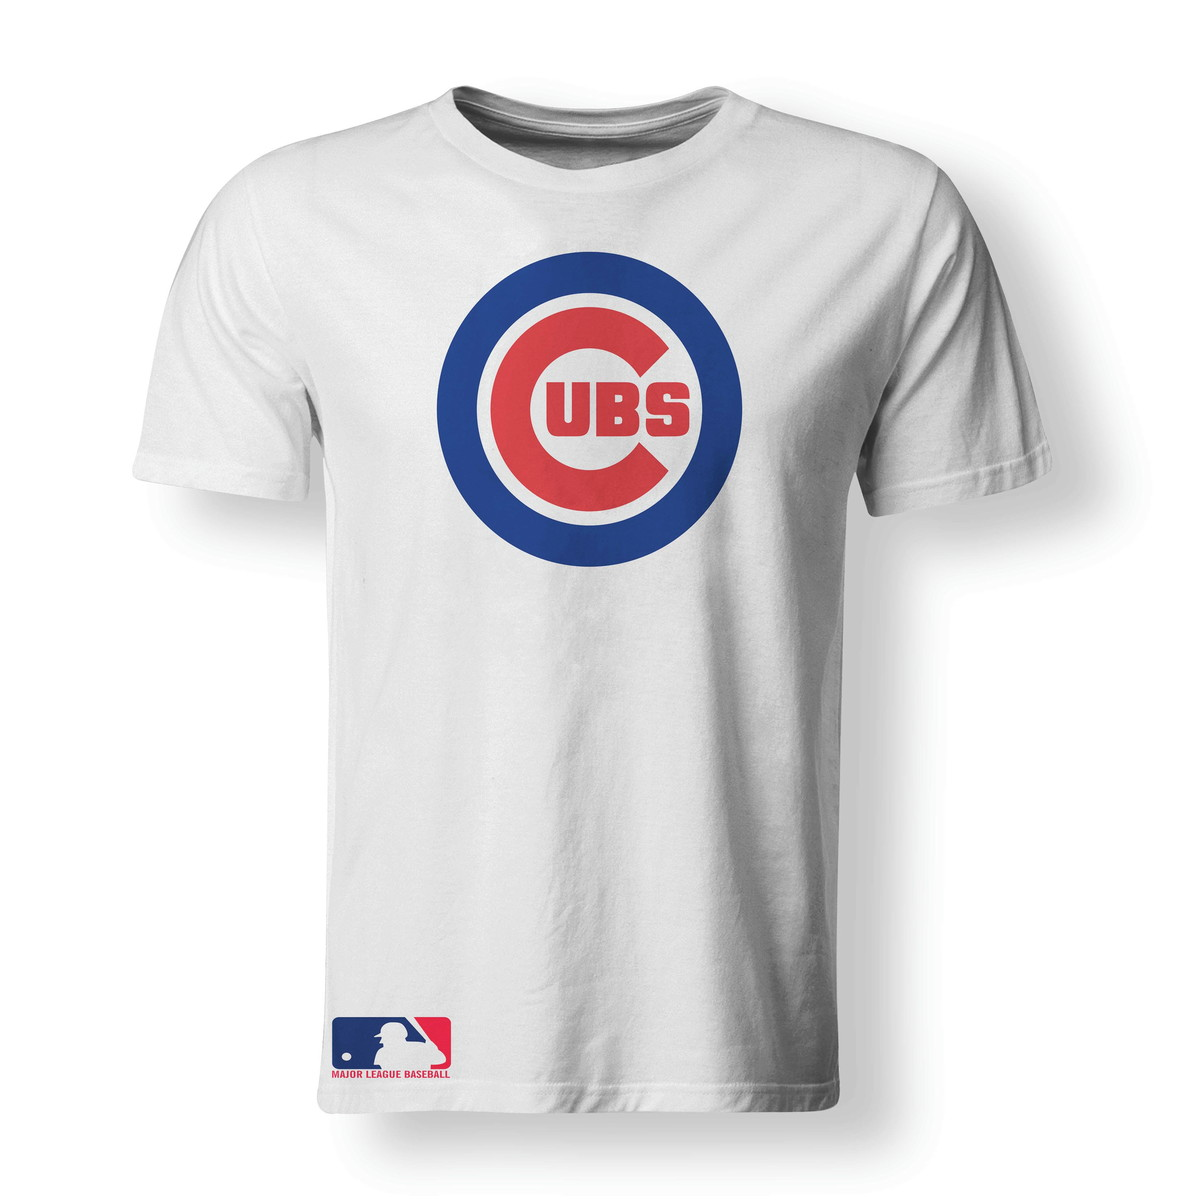 1c0b680c1 Camiseta Chicago Cubs MLB - A3 no Elo7